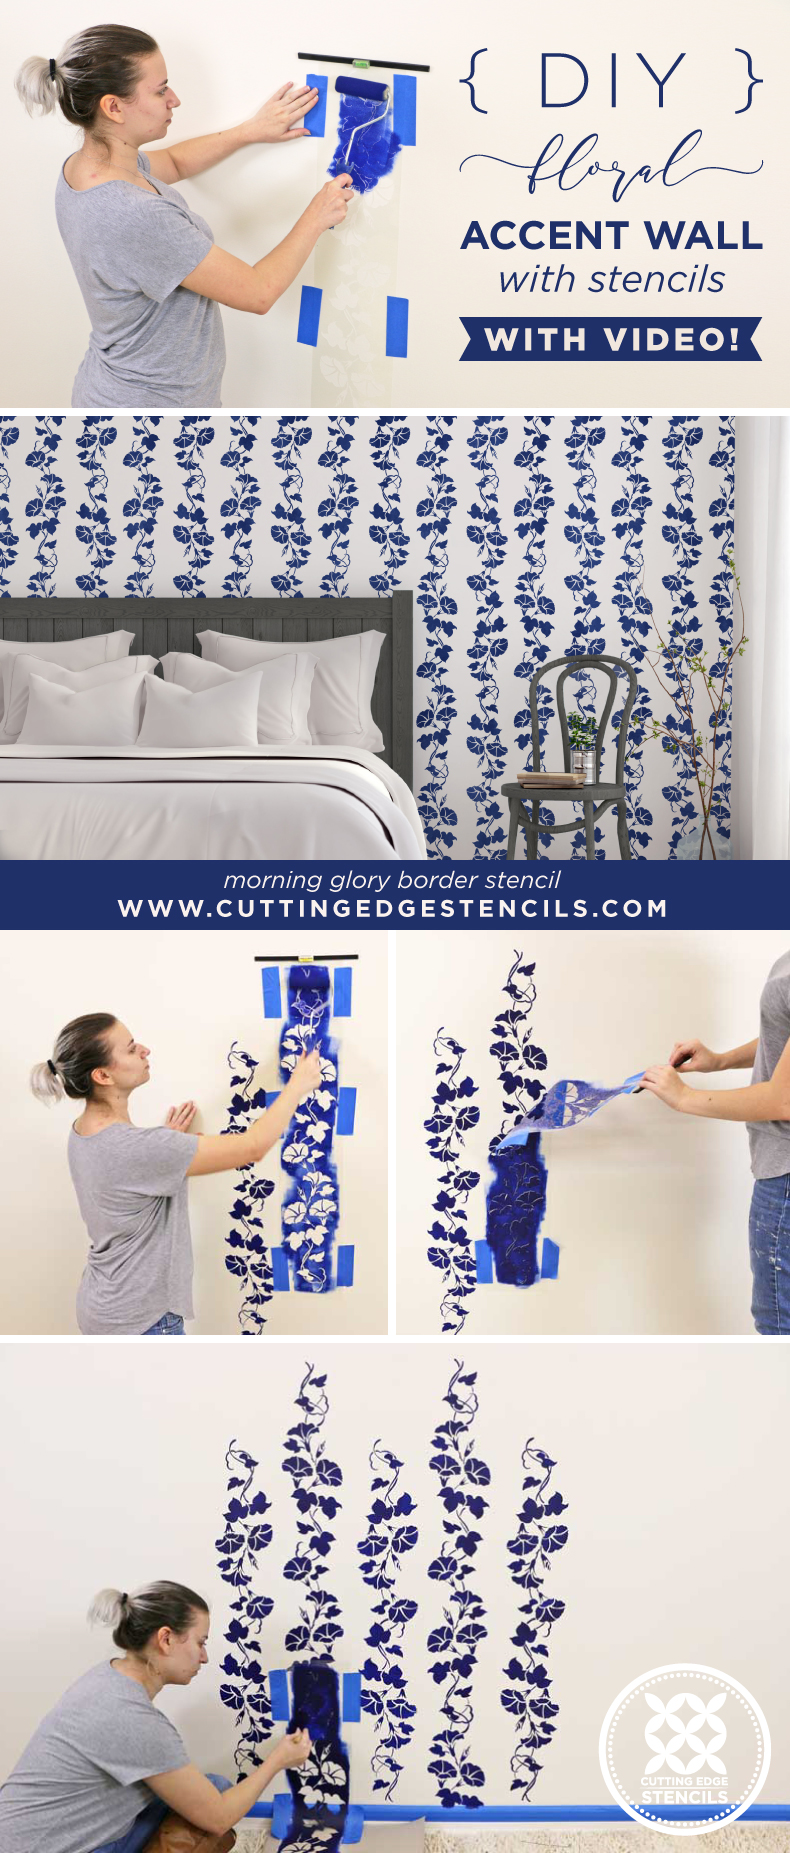 stenciled floral accent wall collage